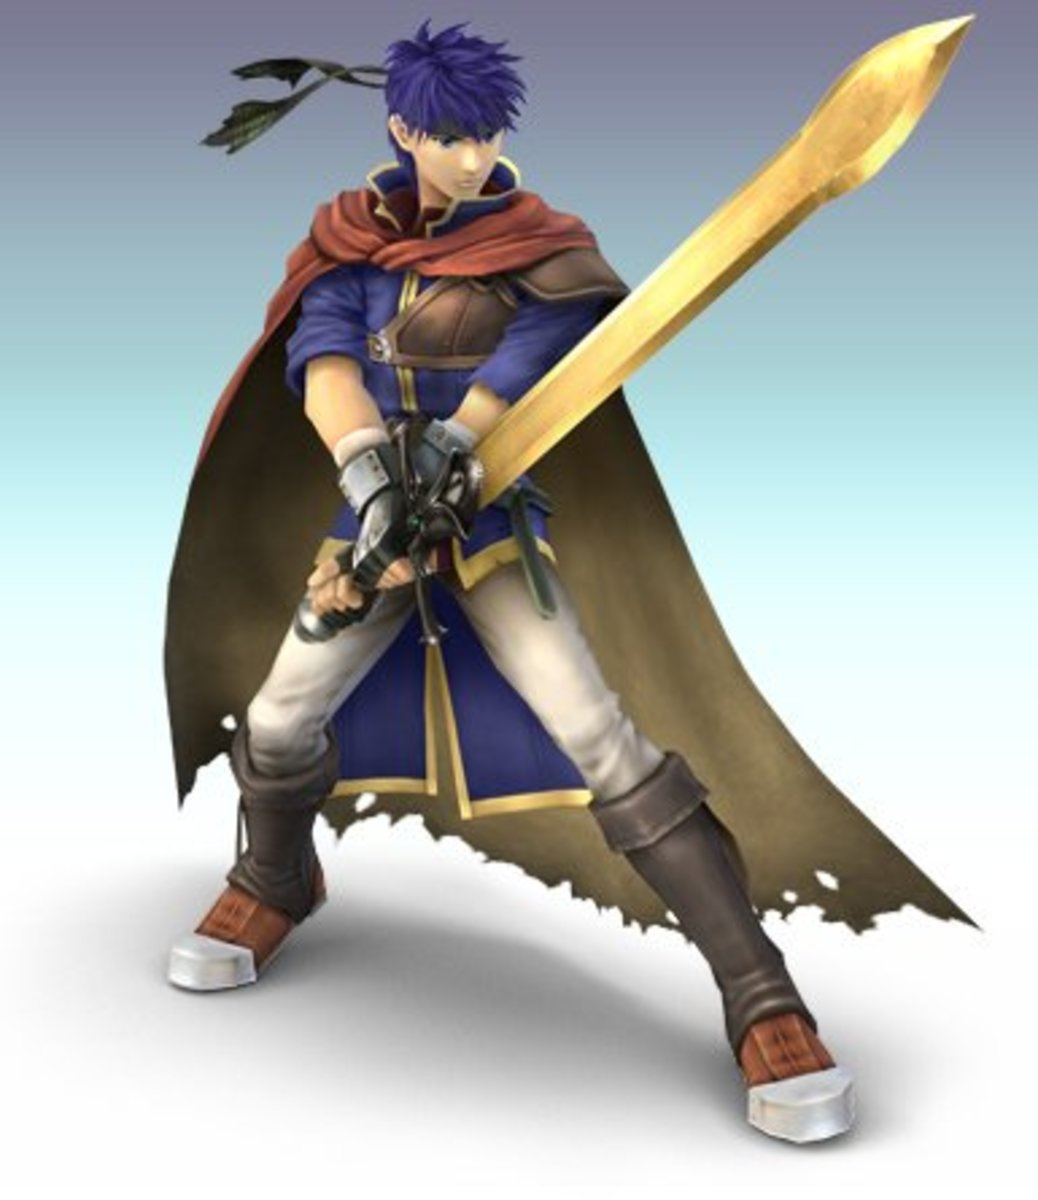 As a general rule, you want to look this awesome, but be nowhere near as slow as Ike was in Super Smash Brothers Brawl.